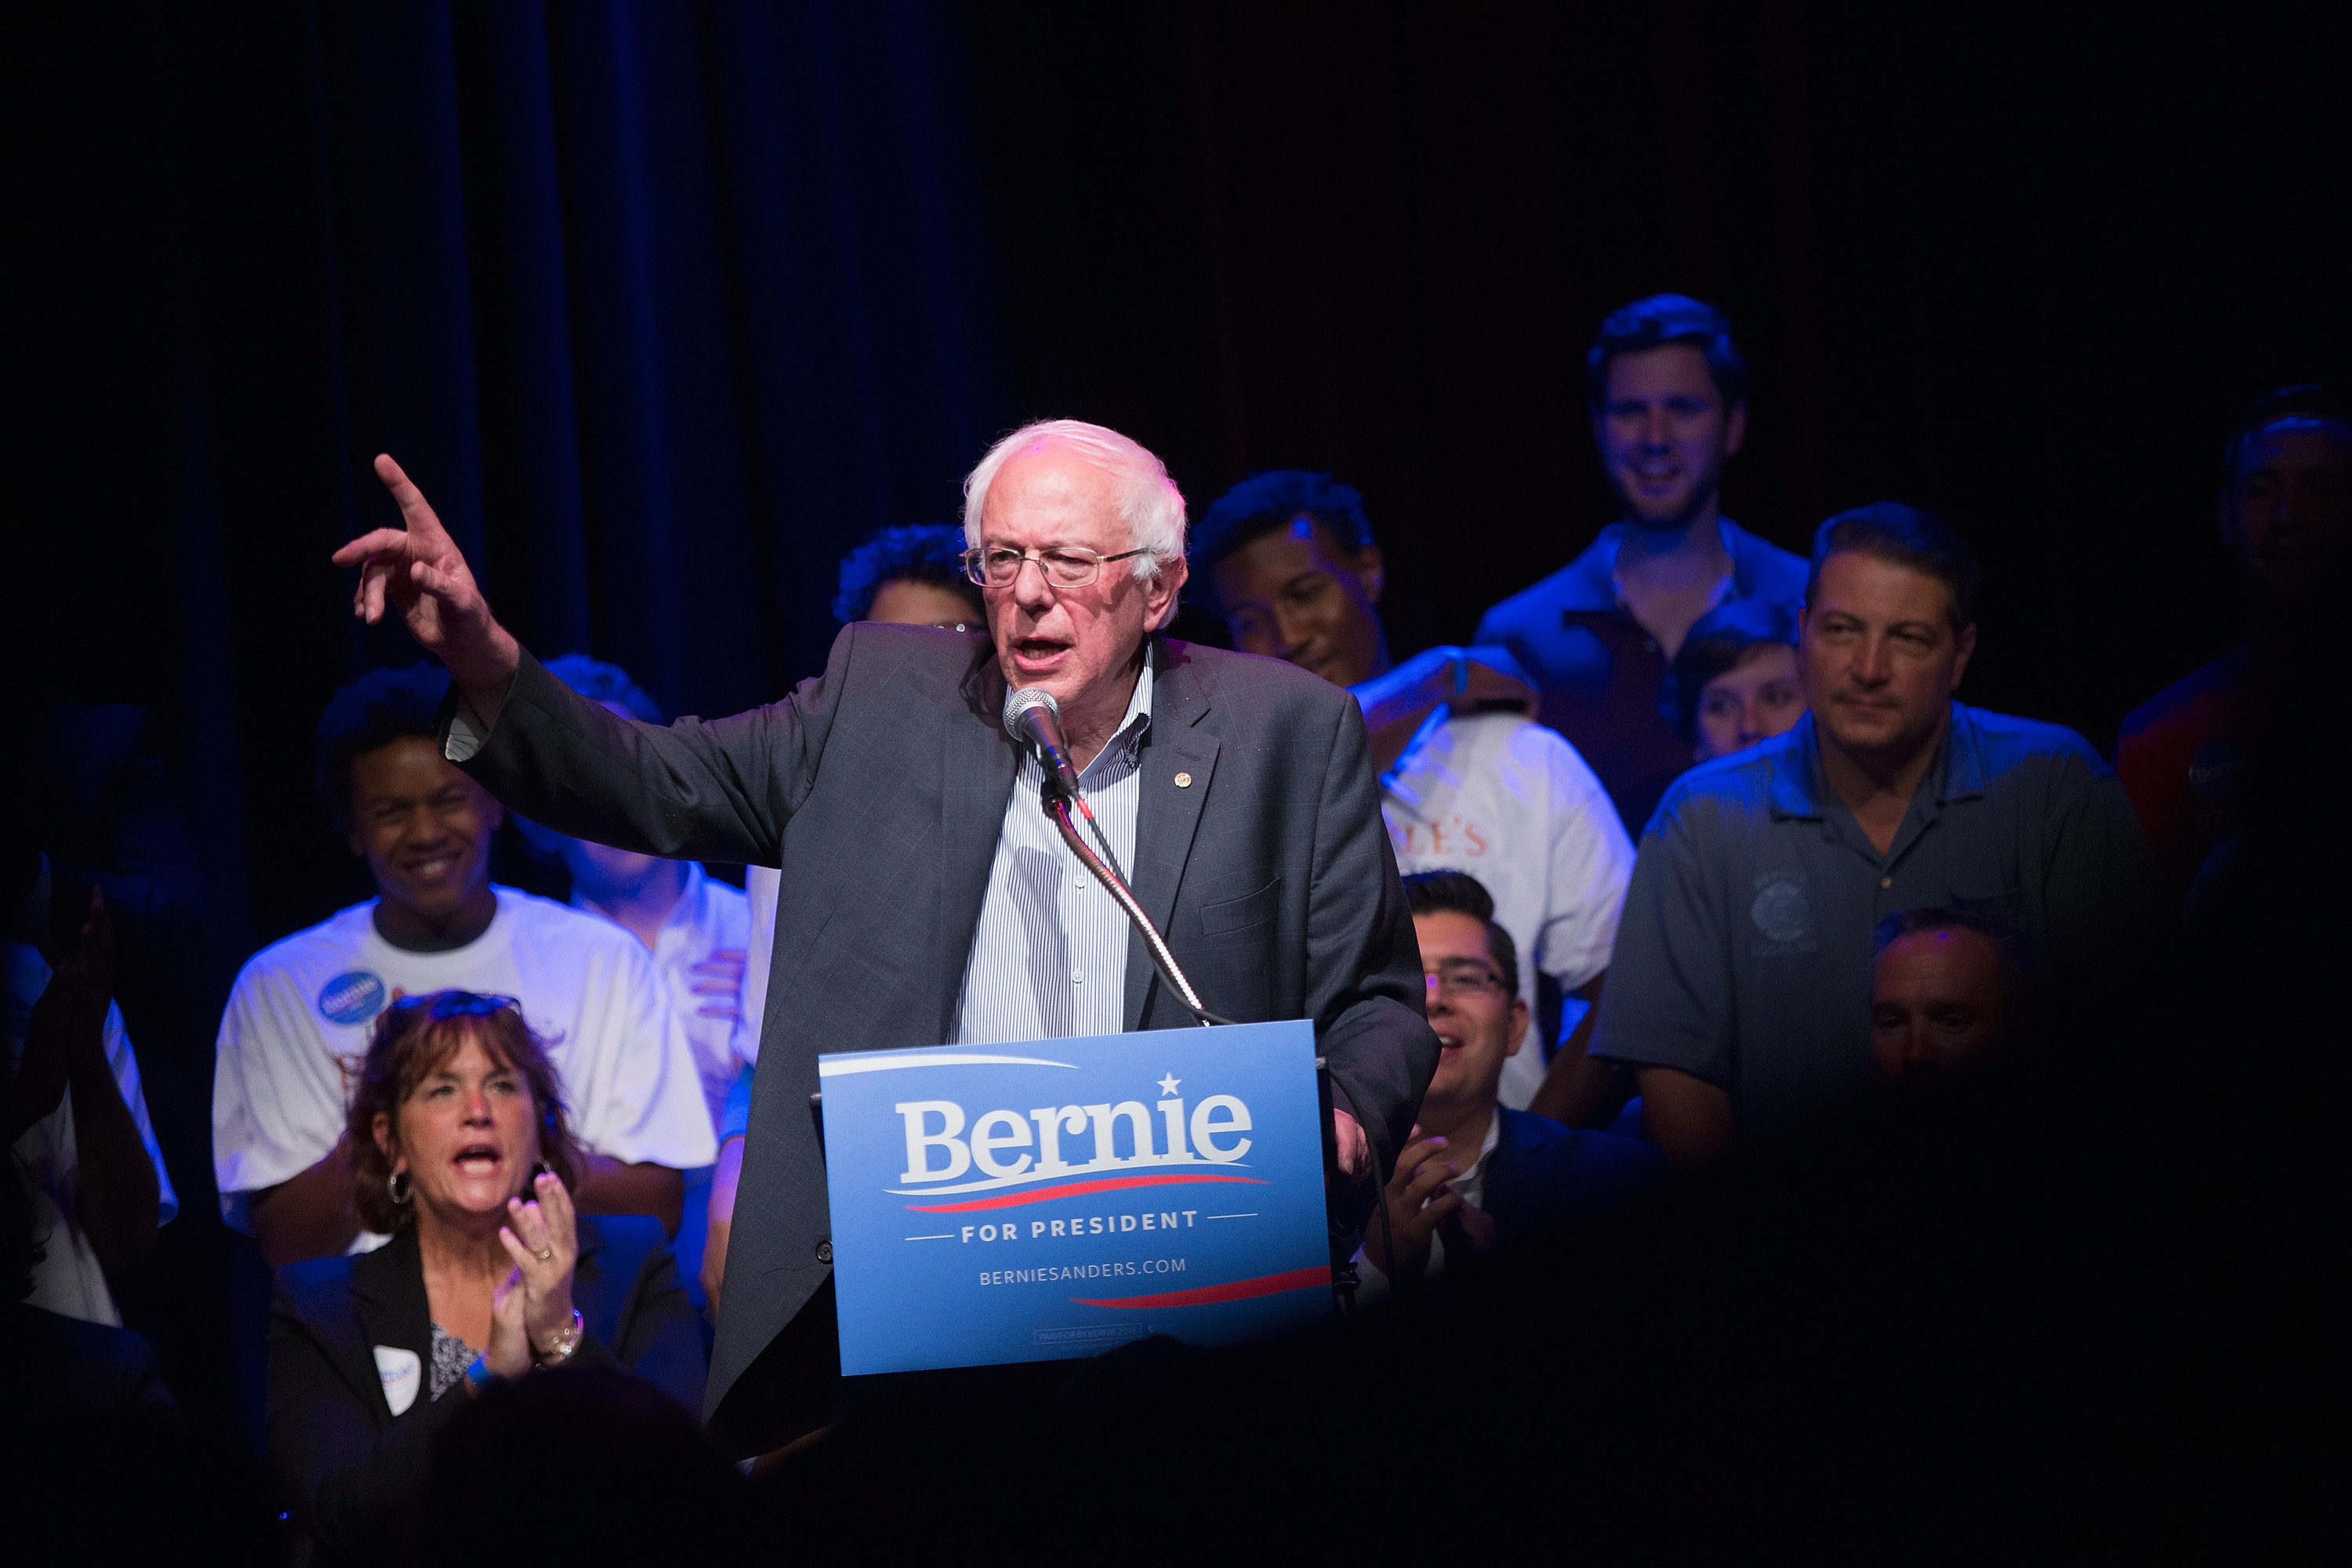 Democratic presidential candidate U.S. Sen. Bernie Sanders (I-VT) speaks to supporters gathered for a meet-and-greet fundraising reception at the Park West on August 17, 2015 in Chicago, Illinois.